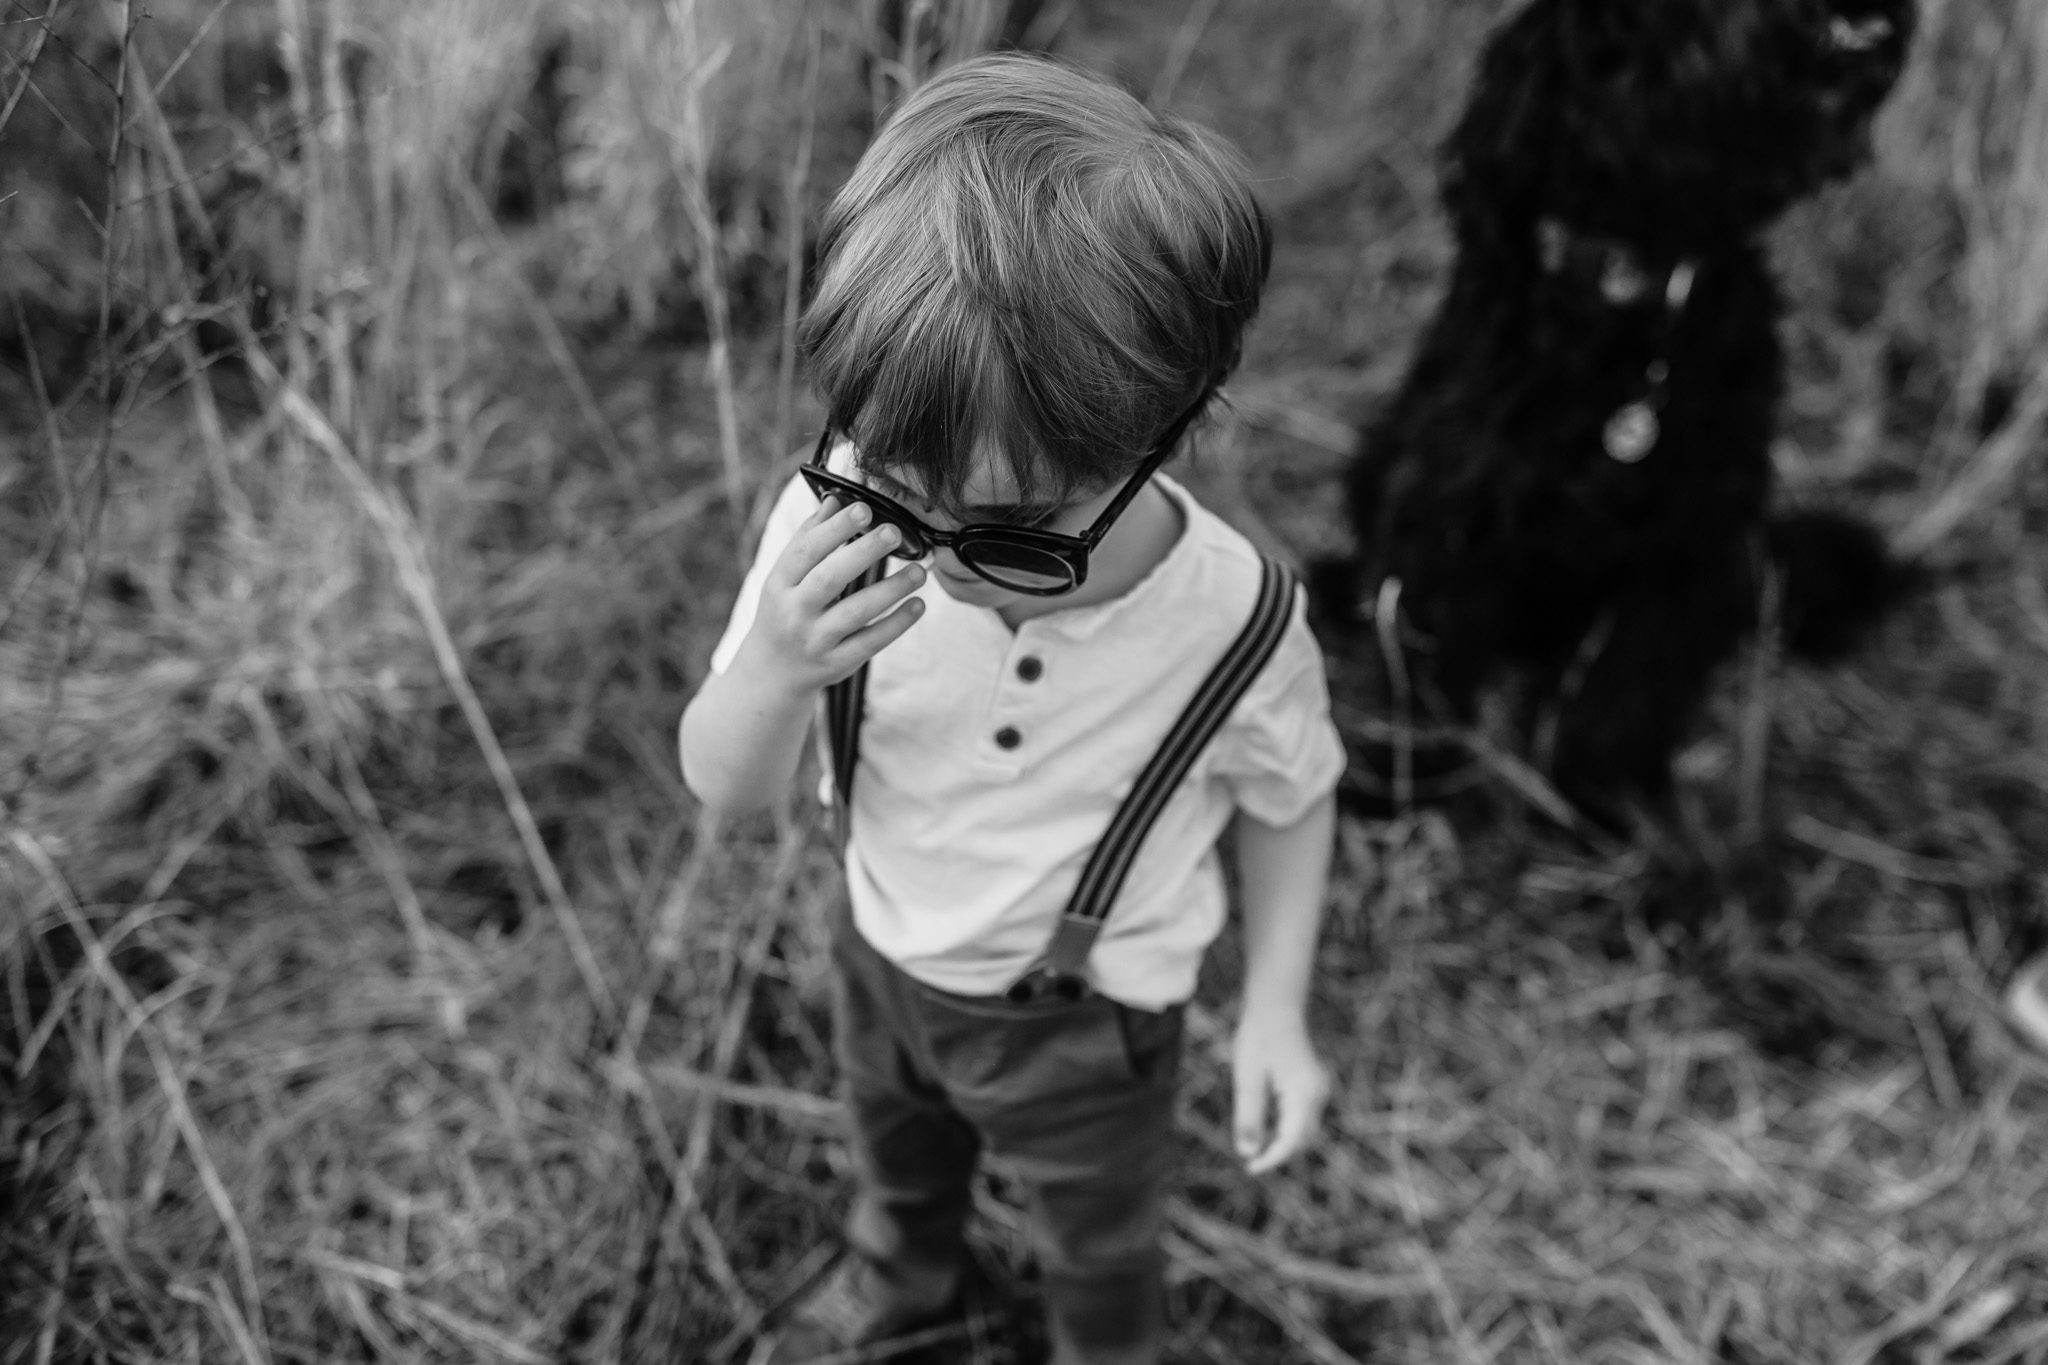 Black and White Young Boy in Field